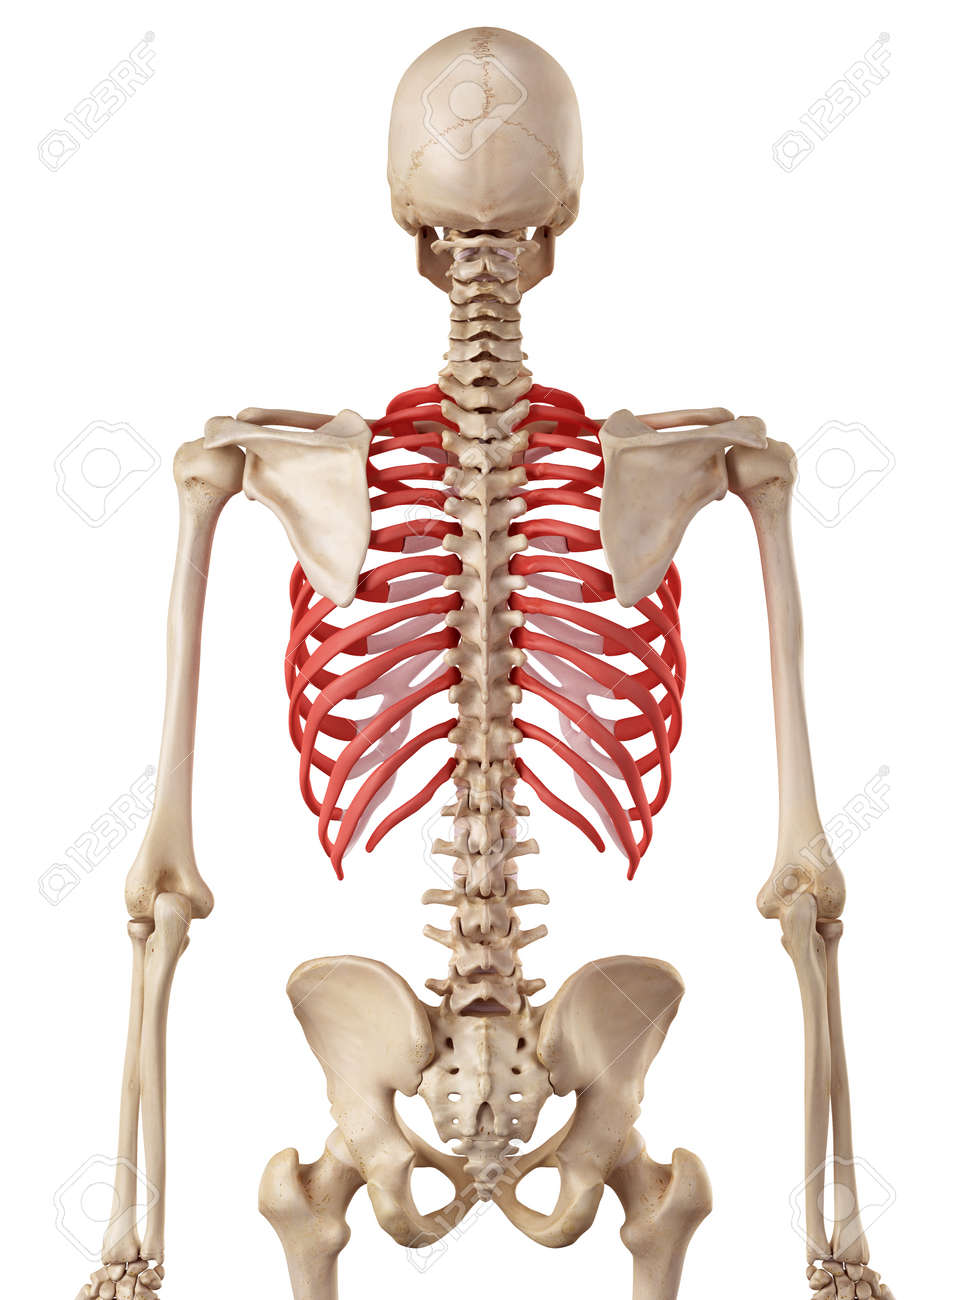 Medical Accurate Illustration Of The Rib Cage Stock Photo Picture